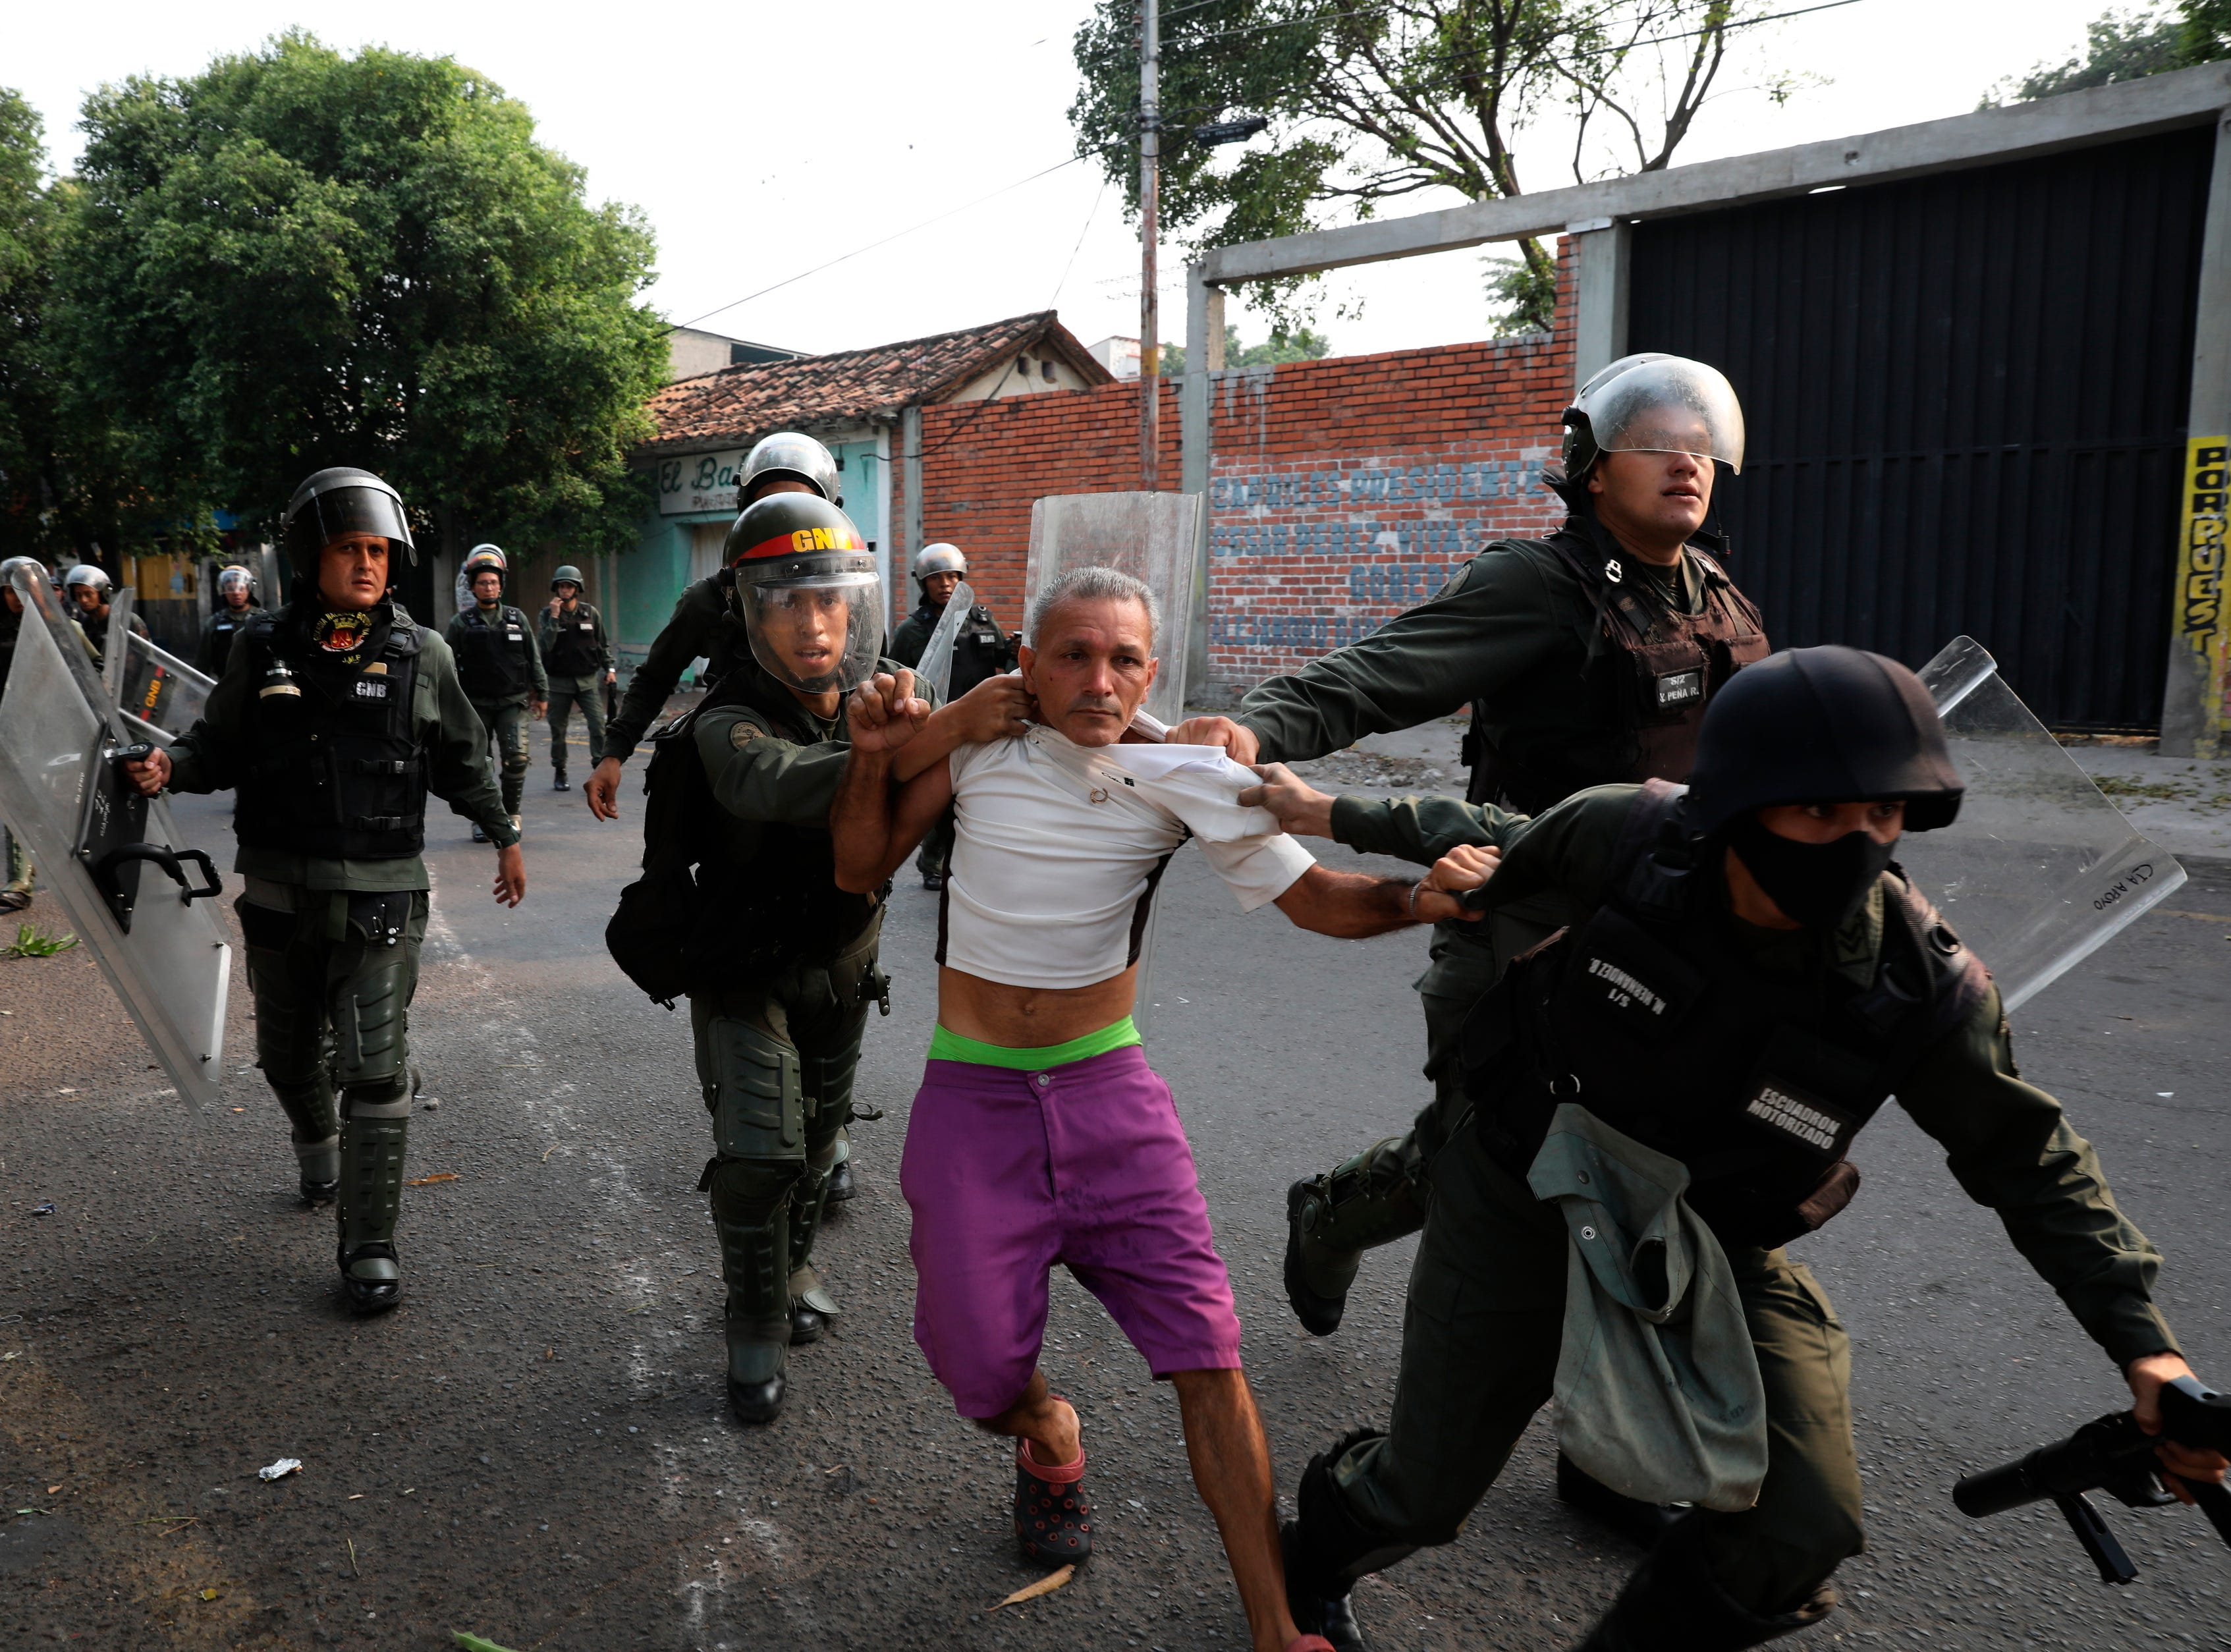 A man is detained during clashes with the Bolivarian National Guard in Urena, Venezuela, near the border with Colombia, Saturday, Feb. 23, 2019.